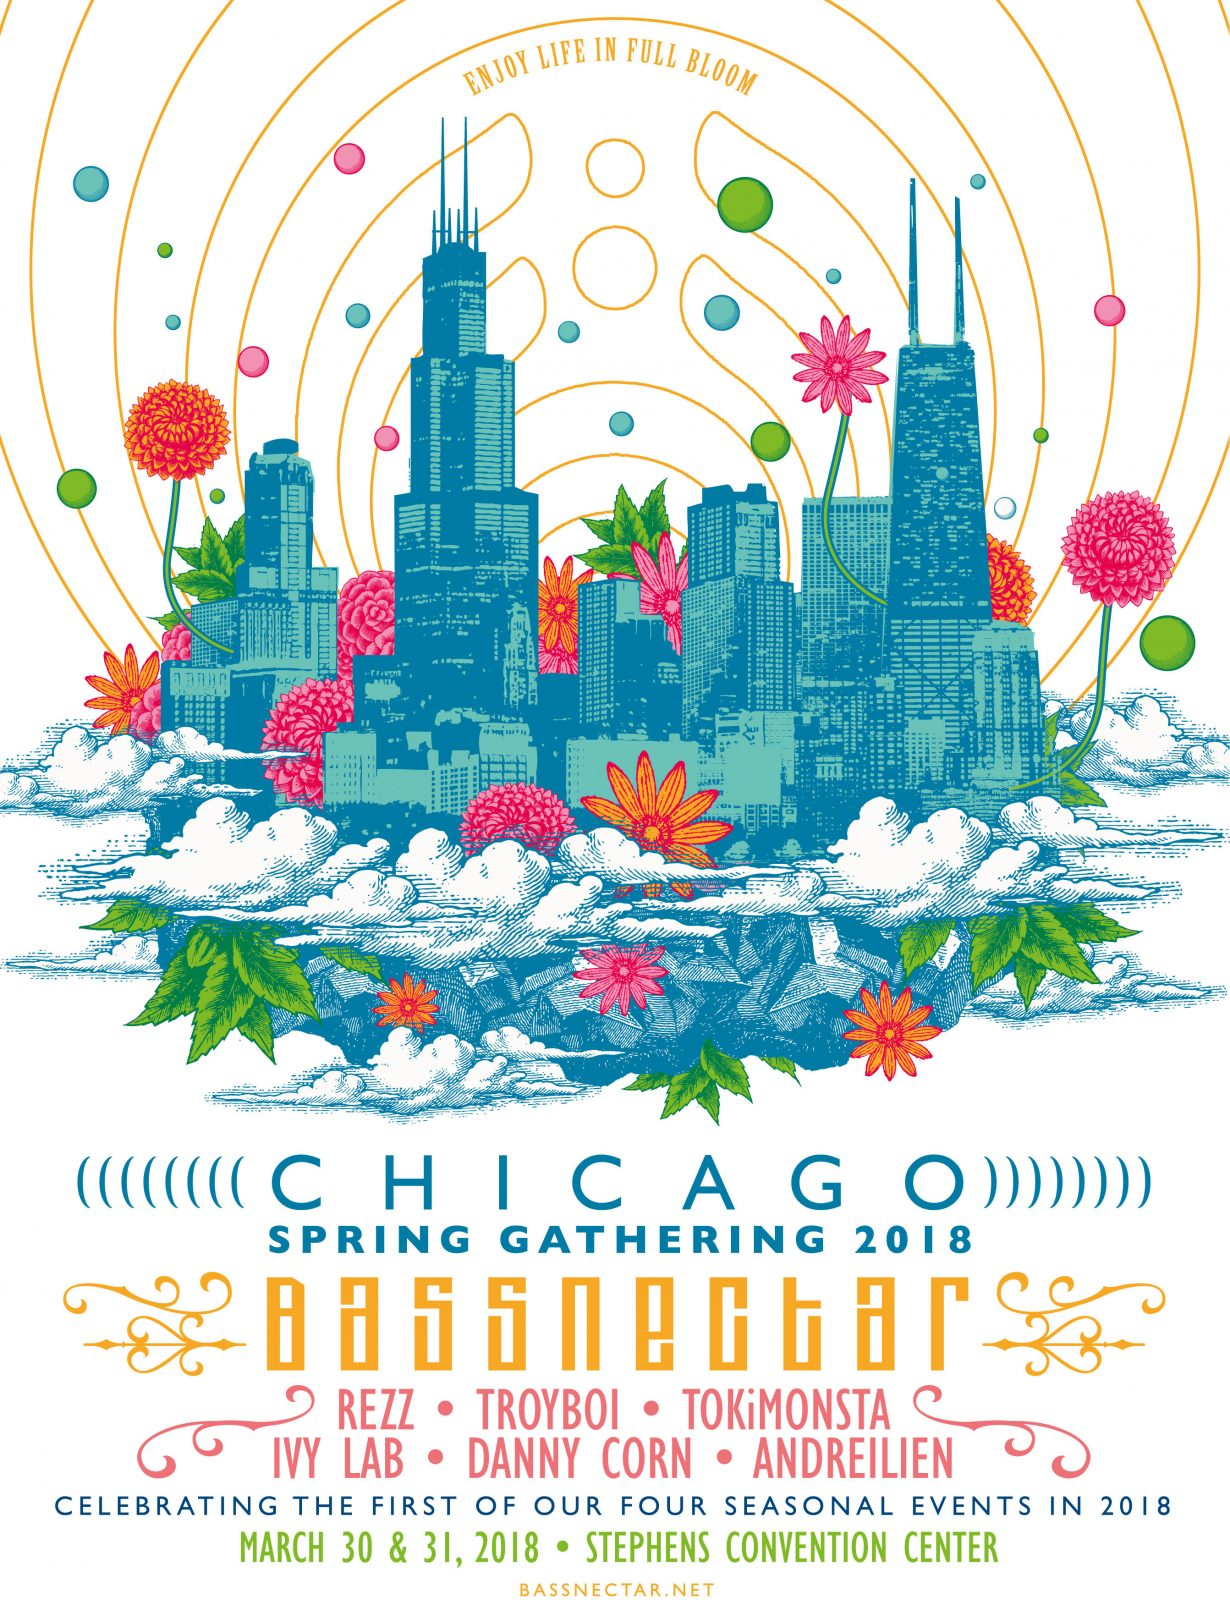 Bassnectar 1230x1616 Bassnectar Chicago Spring Gathering Concert Tickets at the Donald E. Stephens Convention Center